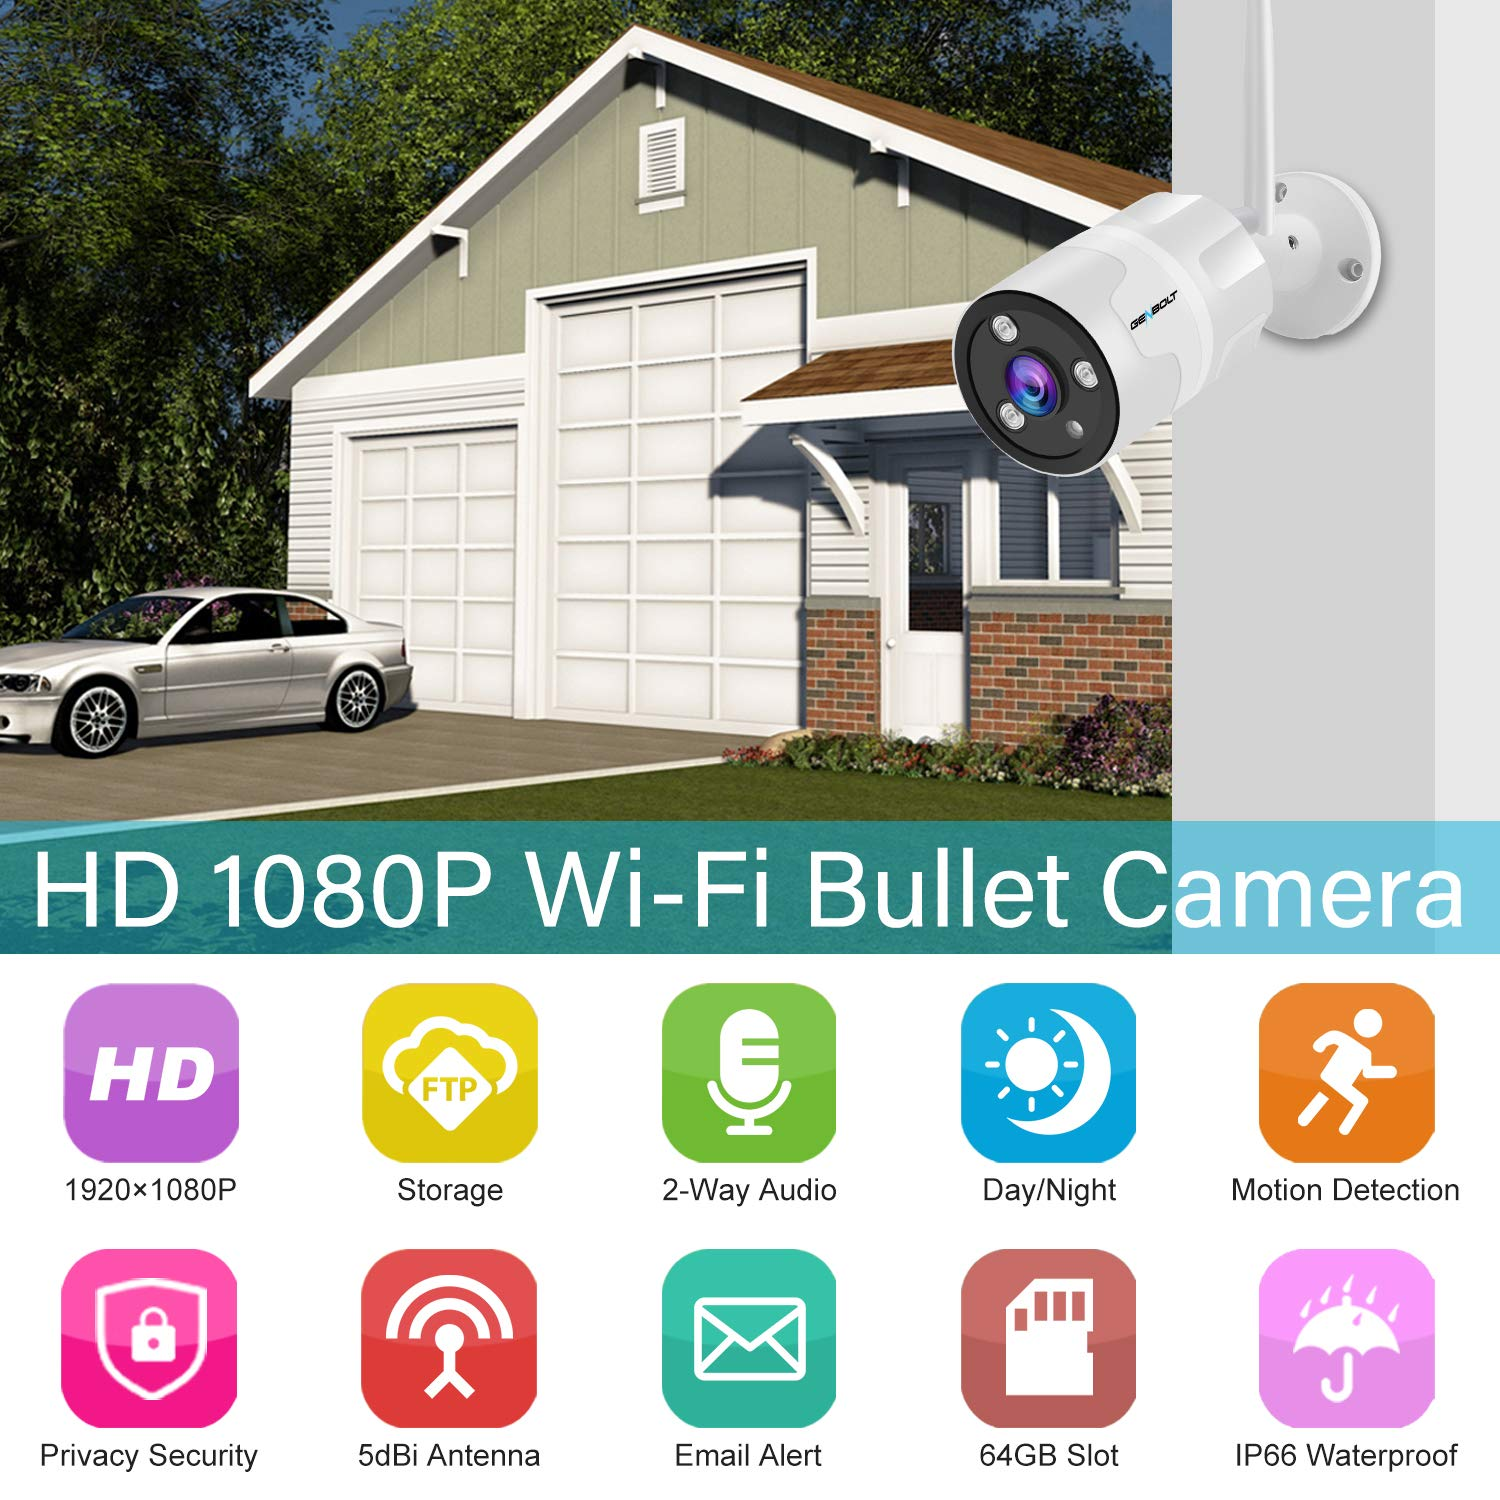 1080P Outdoor Security Camera - GENBOLT Wireless WiFi Home Surveillance IP  Camera,Customizable Motion Detection,110° Super Wide View,Loop Recording